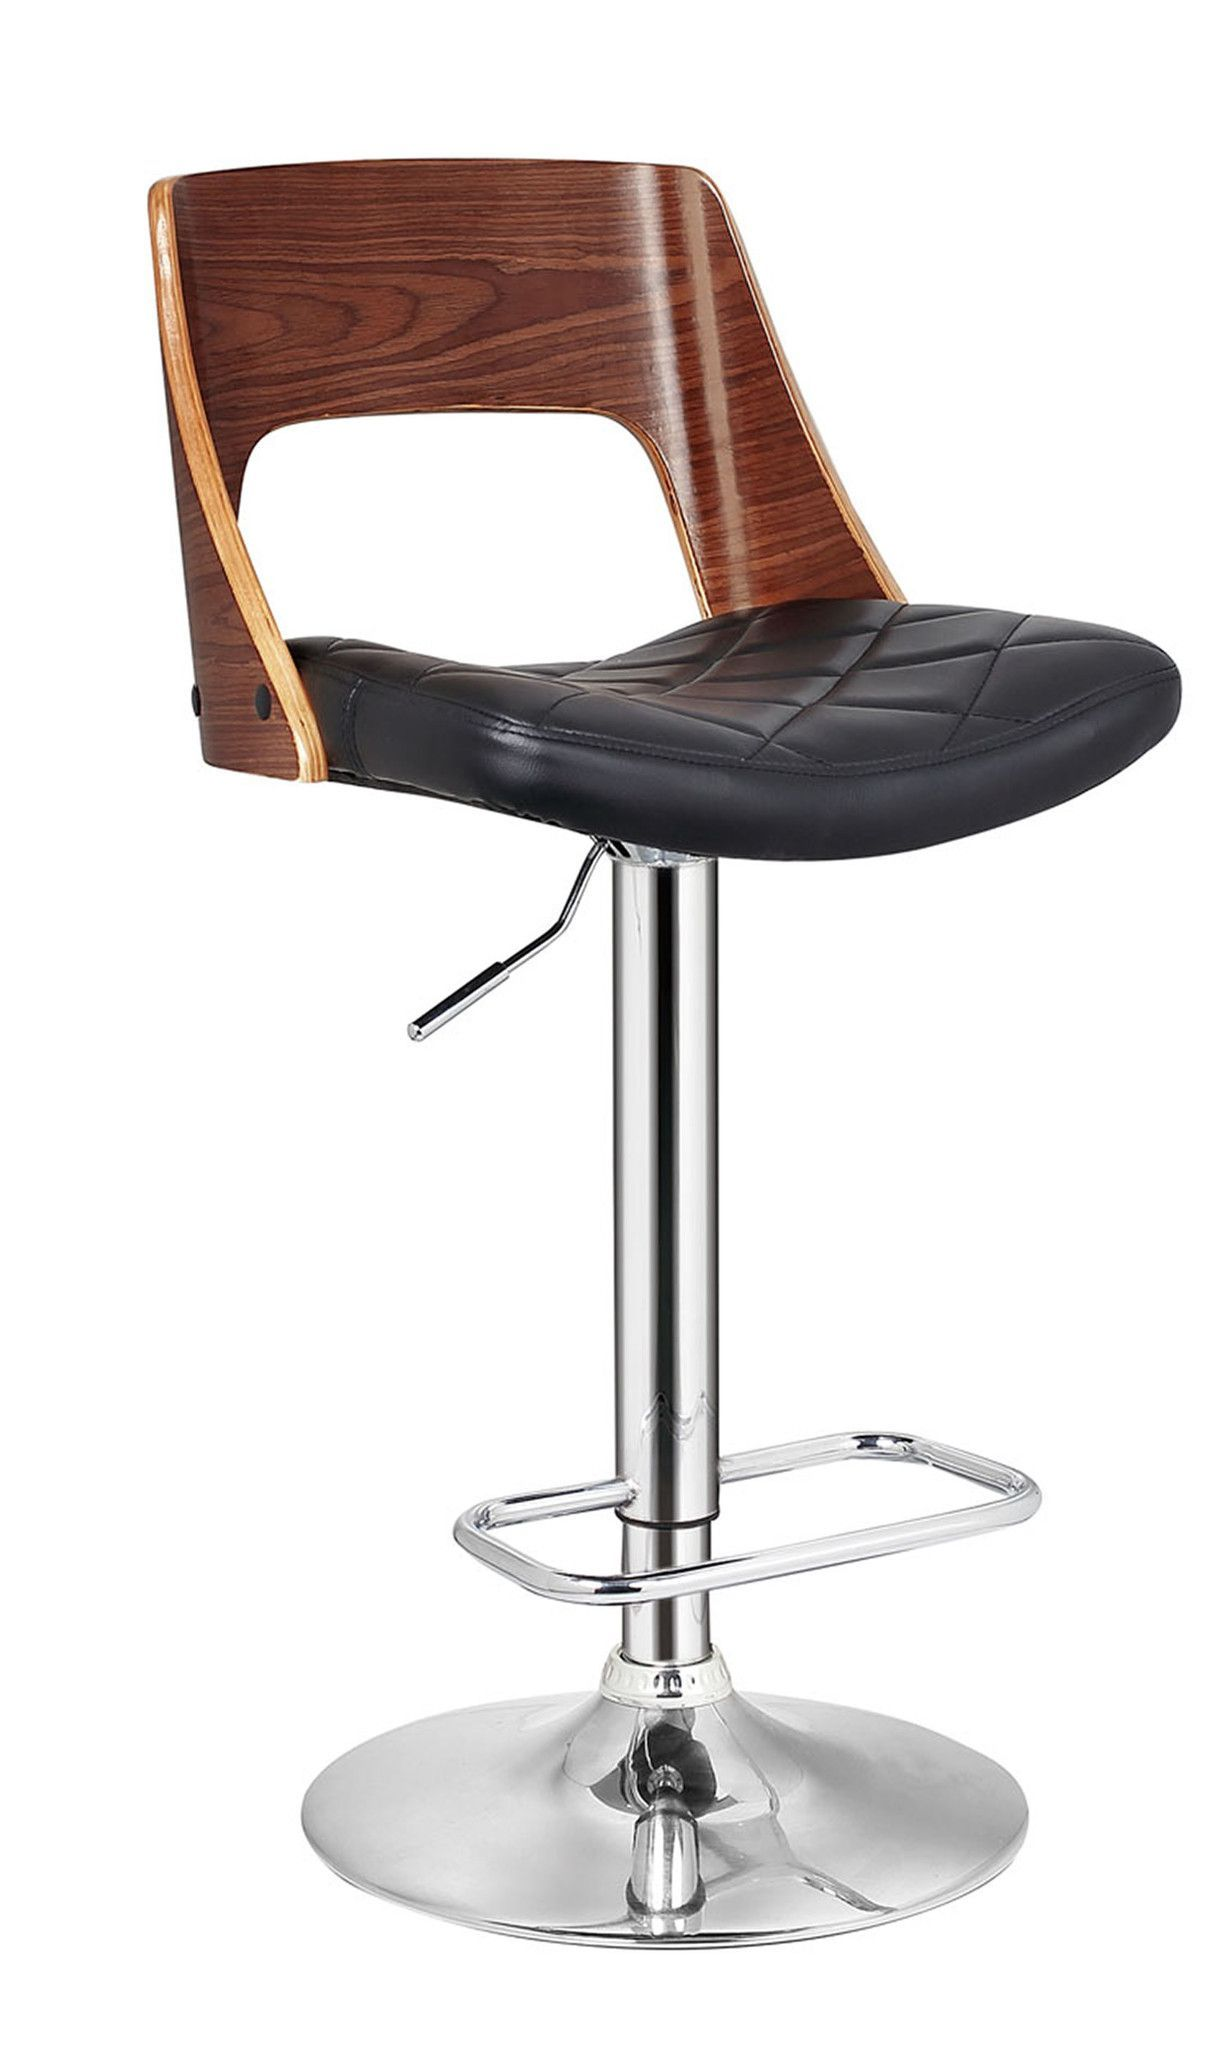 Stylish Wood Back Adjustable Swivel Barstool With Diamond Quilted